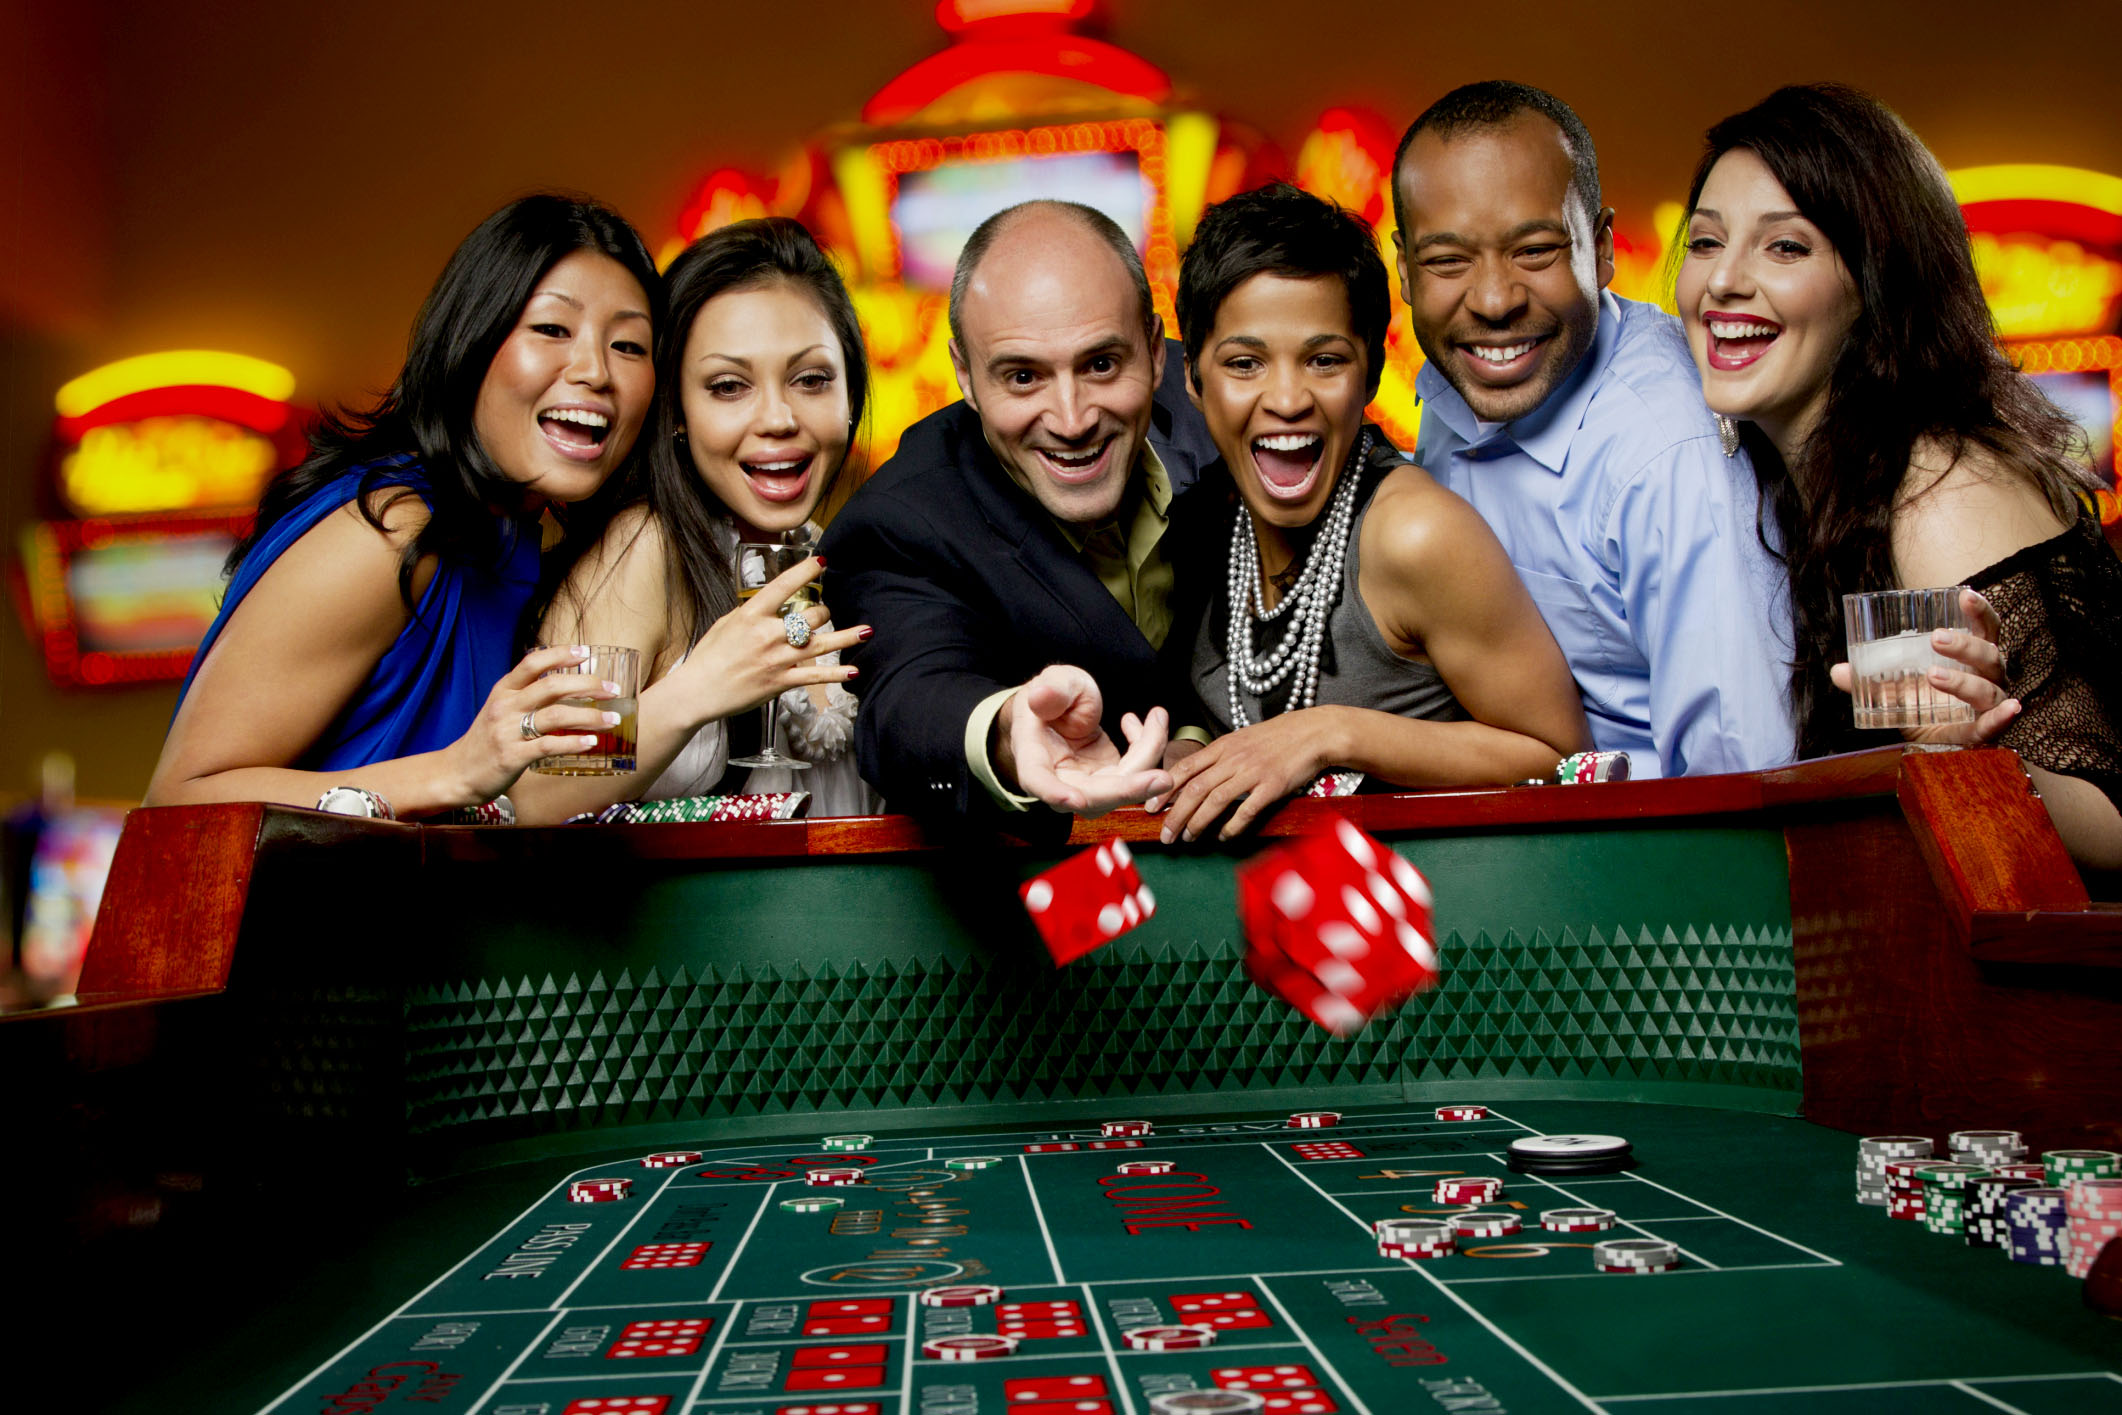 Grand mayfair casino 5 free